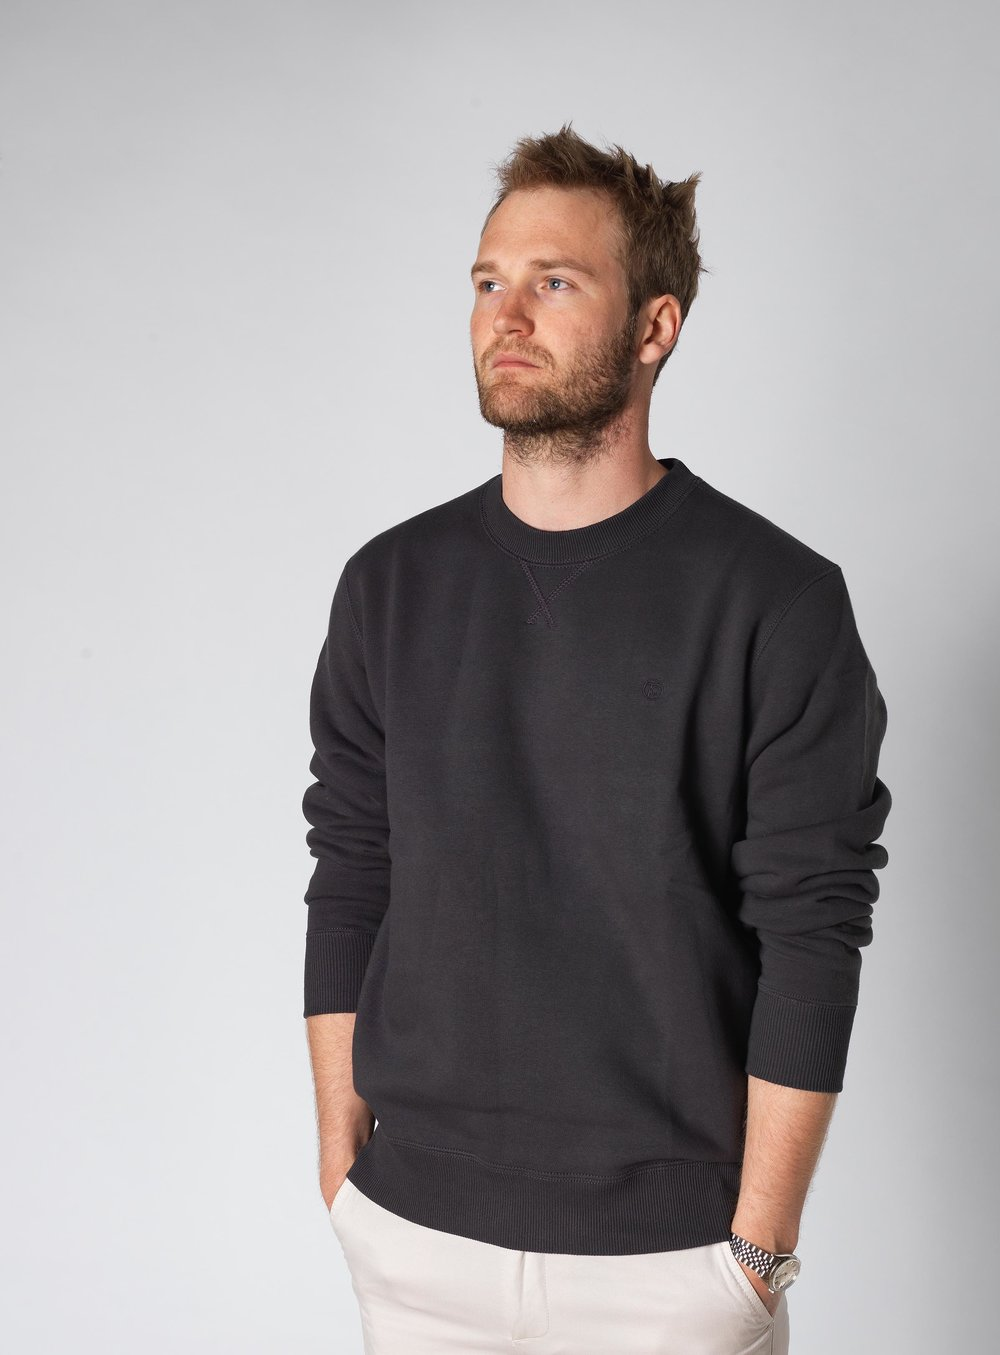 Tom Cridland models the 30 Year Sweatshirt. Image courtesy of Tom Cridland